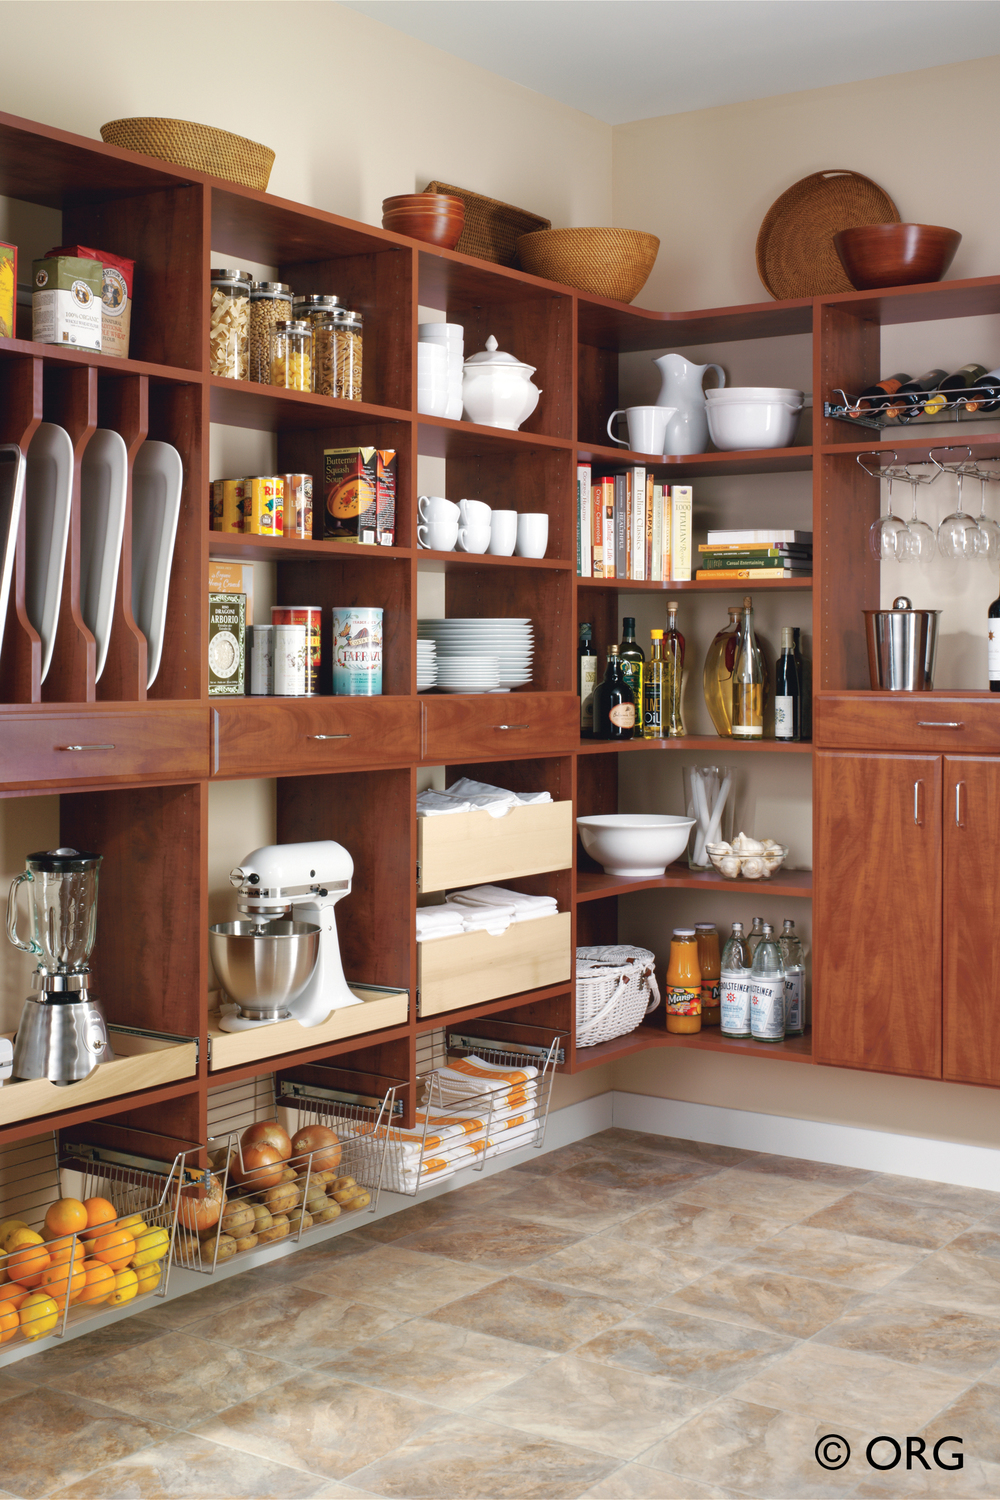 kitchen-pantry-storage-831.jpg